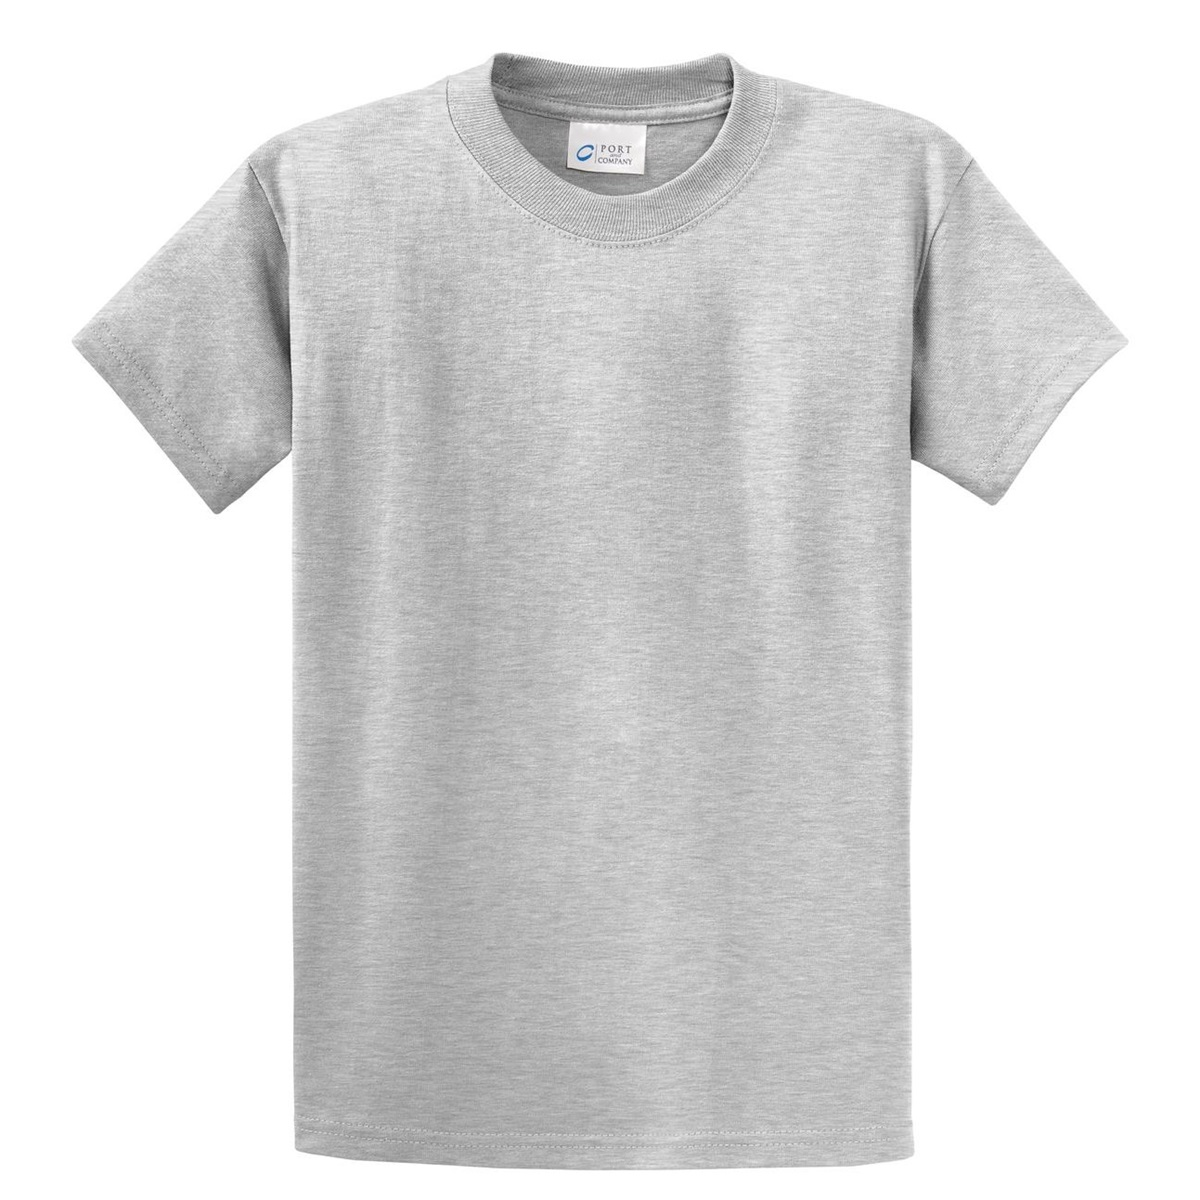 Port Company Pc61 Essential T Shirt Ash